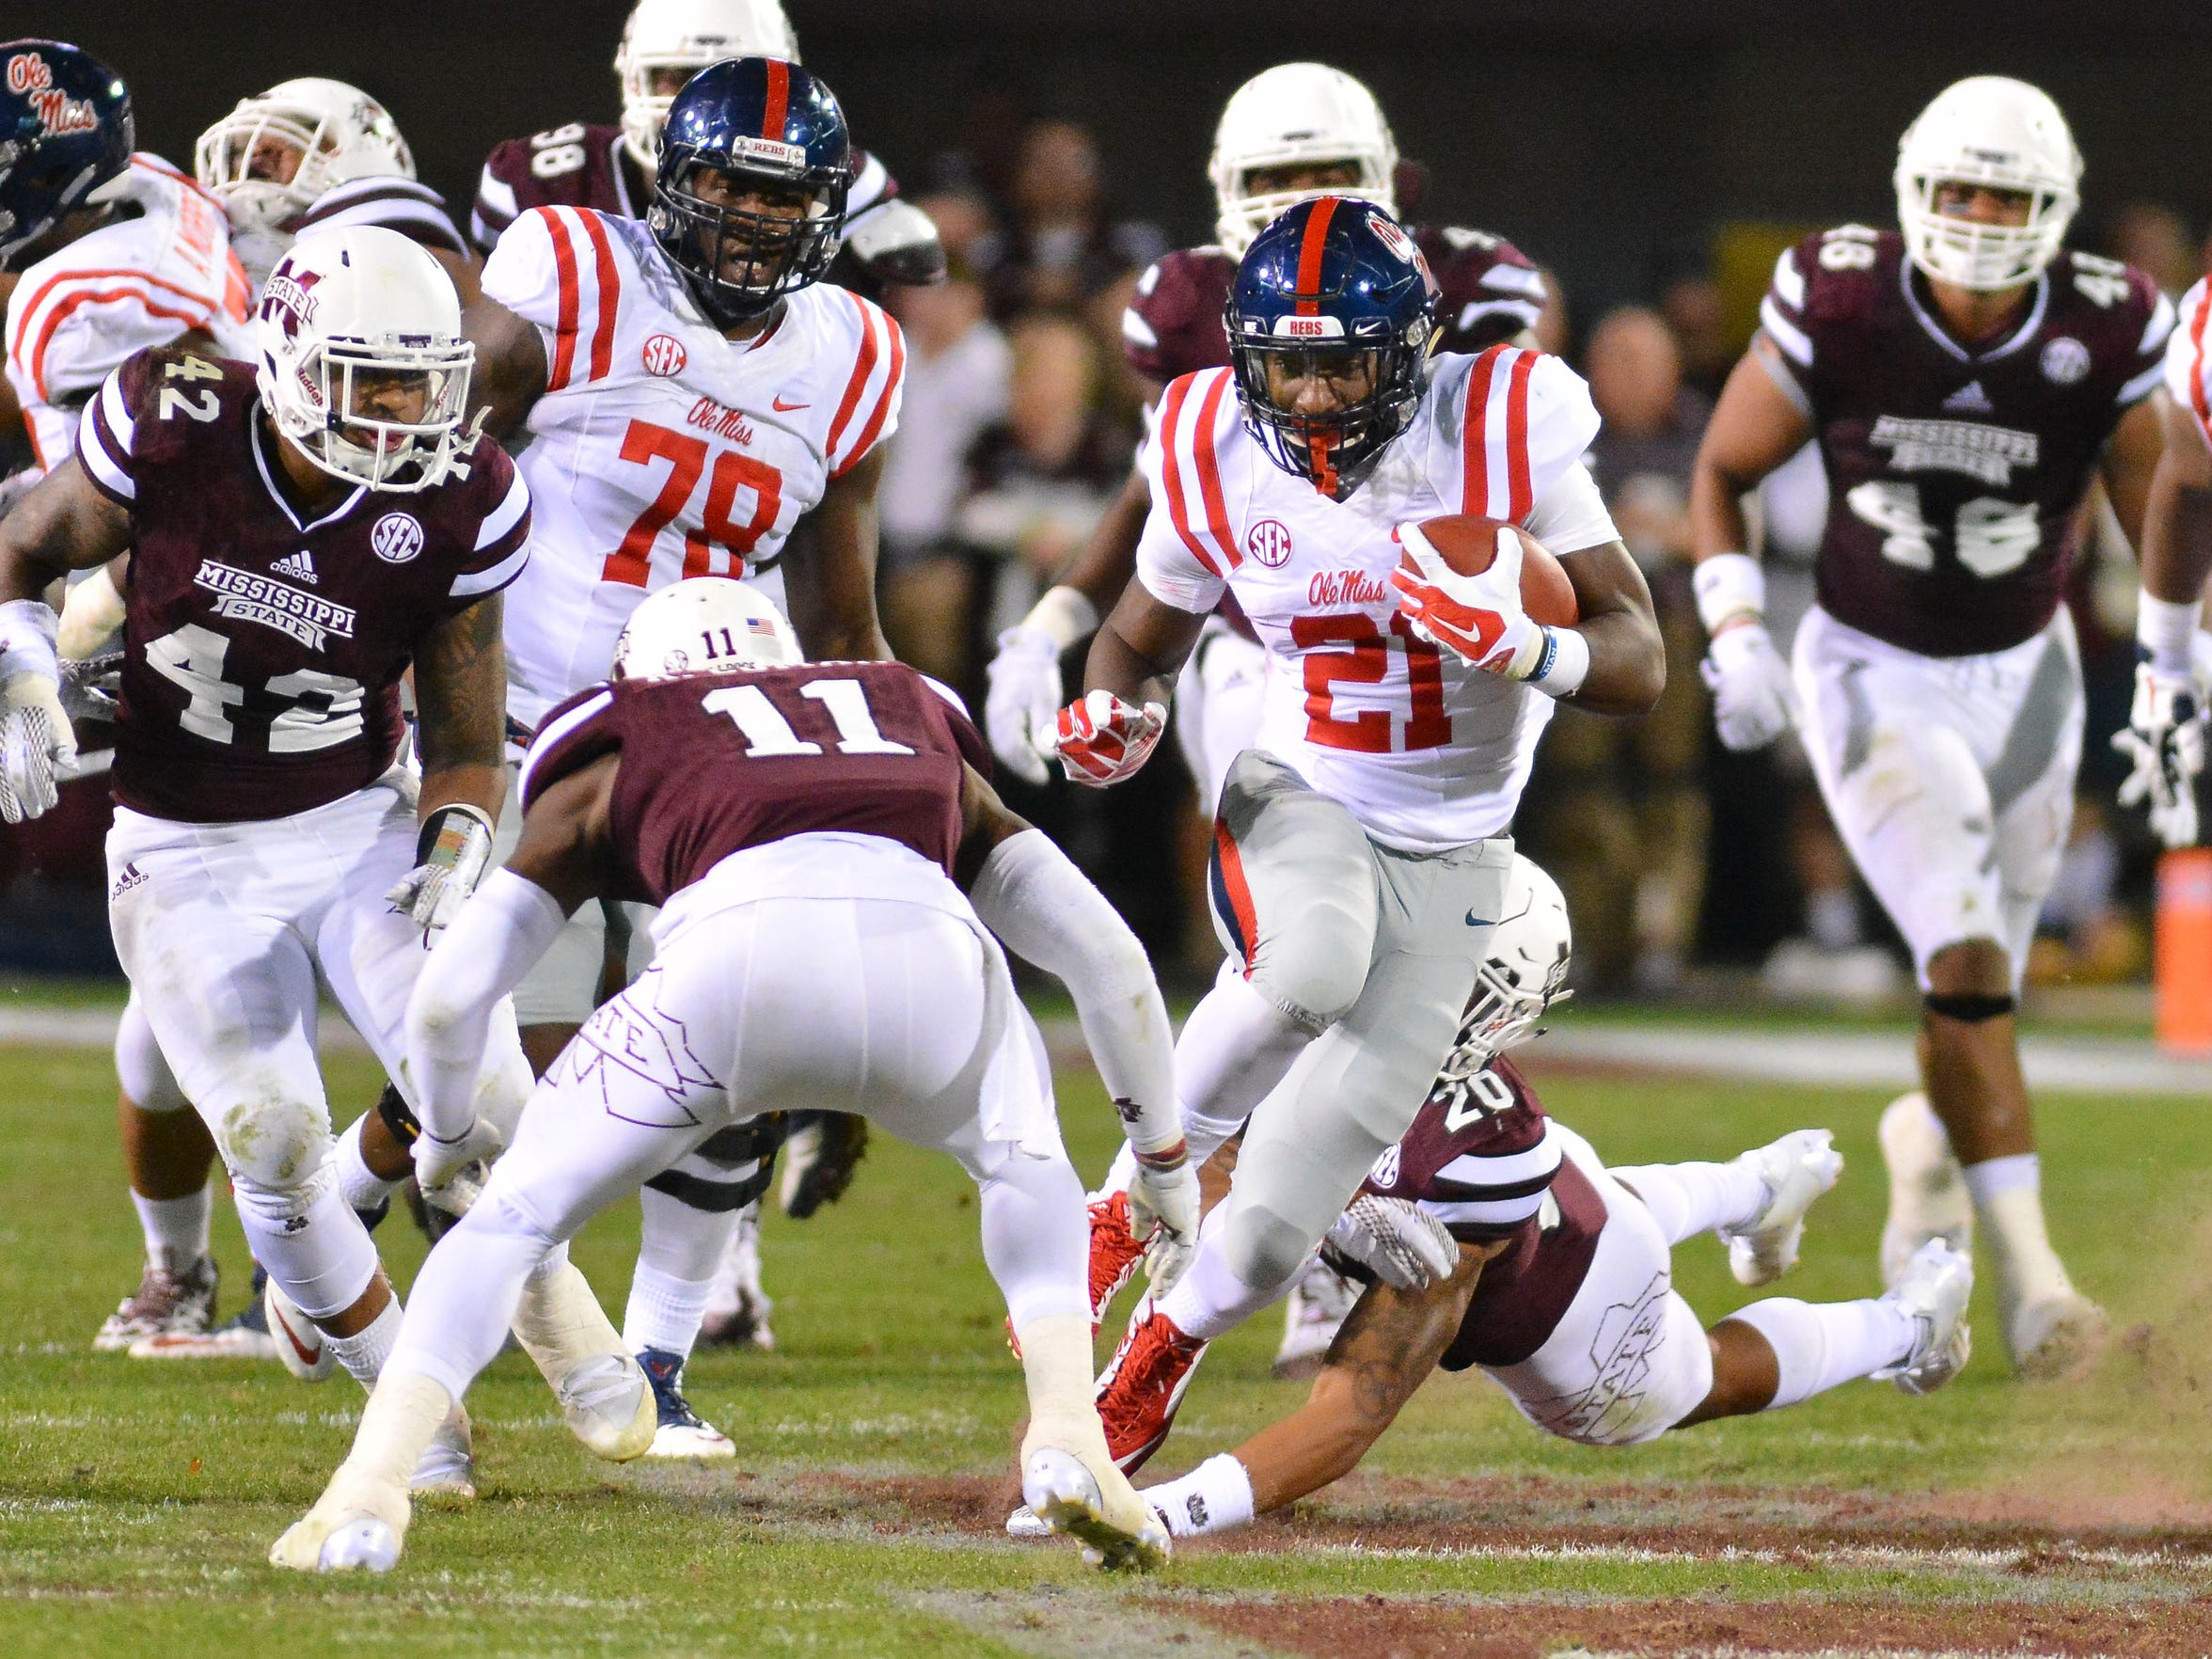 Ole Miss running back Akeem Judd fought through adversity in his life to become the Rebels' No. 2 running back this season.